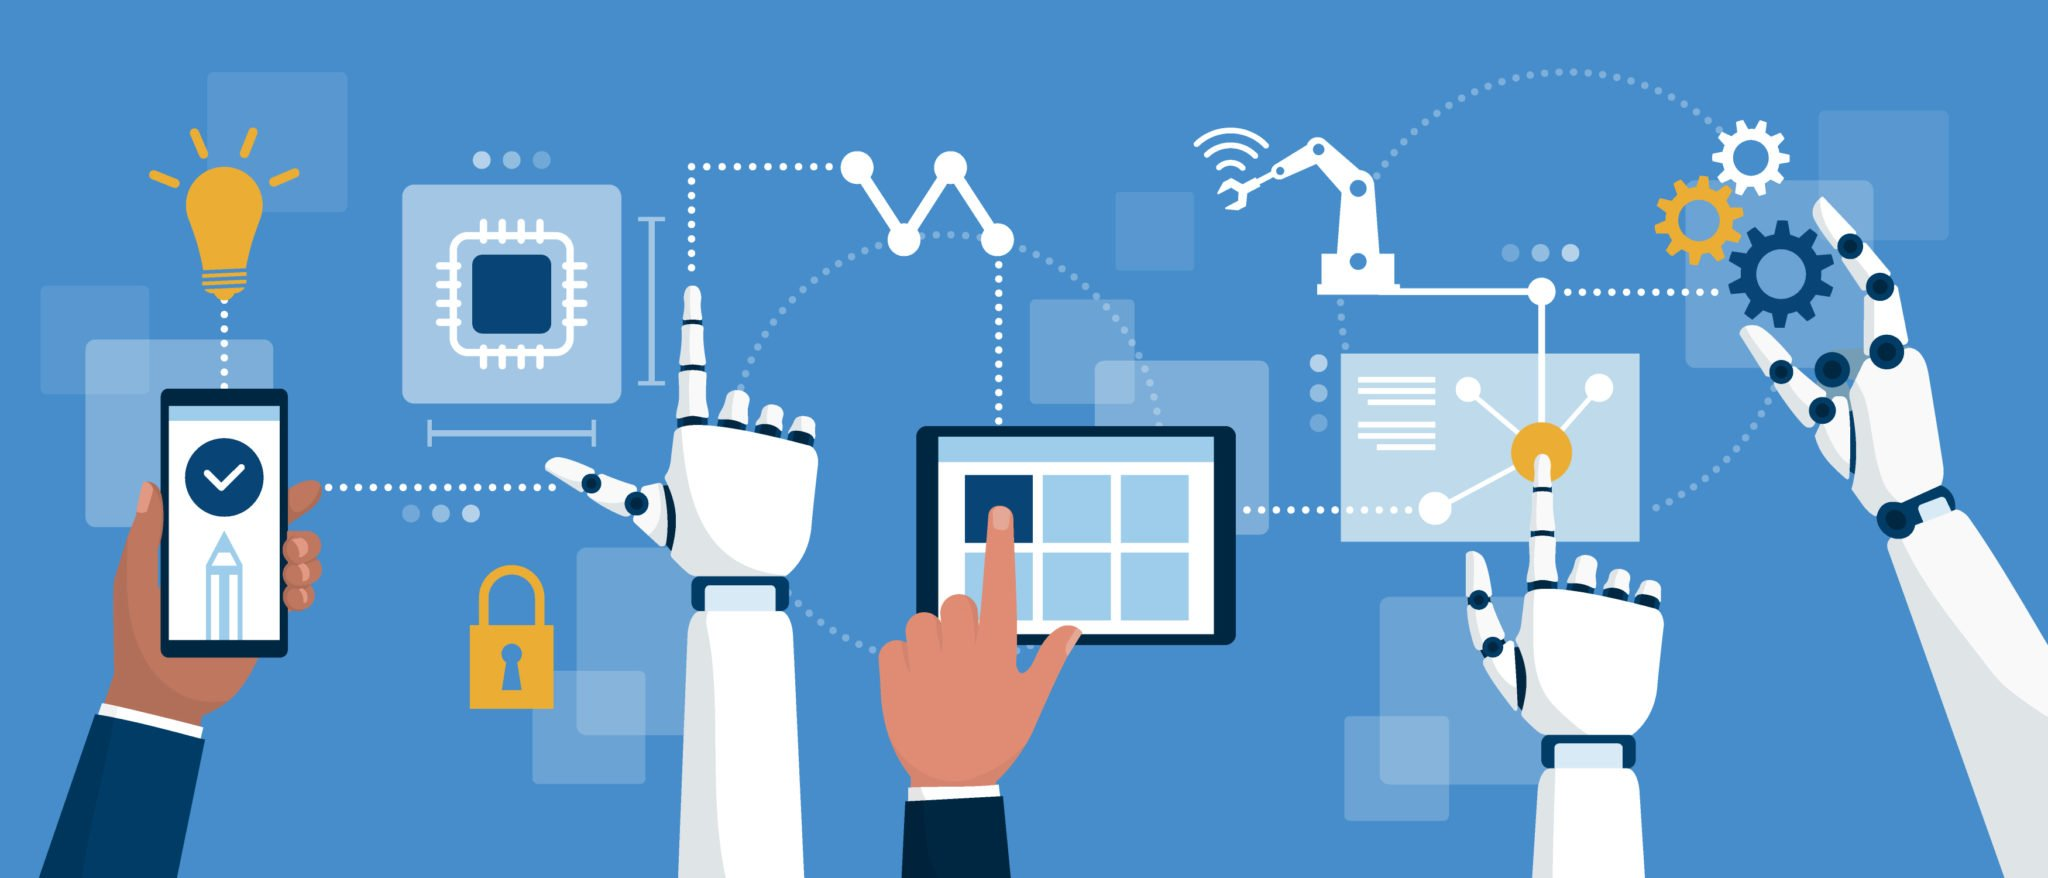 Discover the latest tech tools for customer service